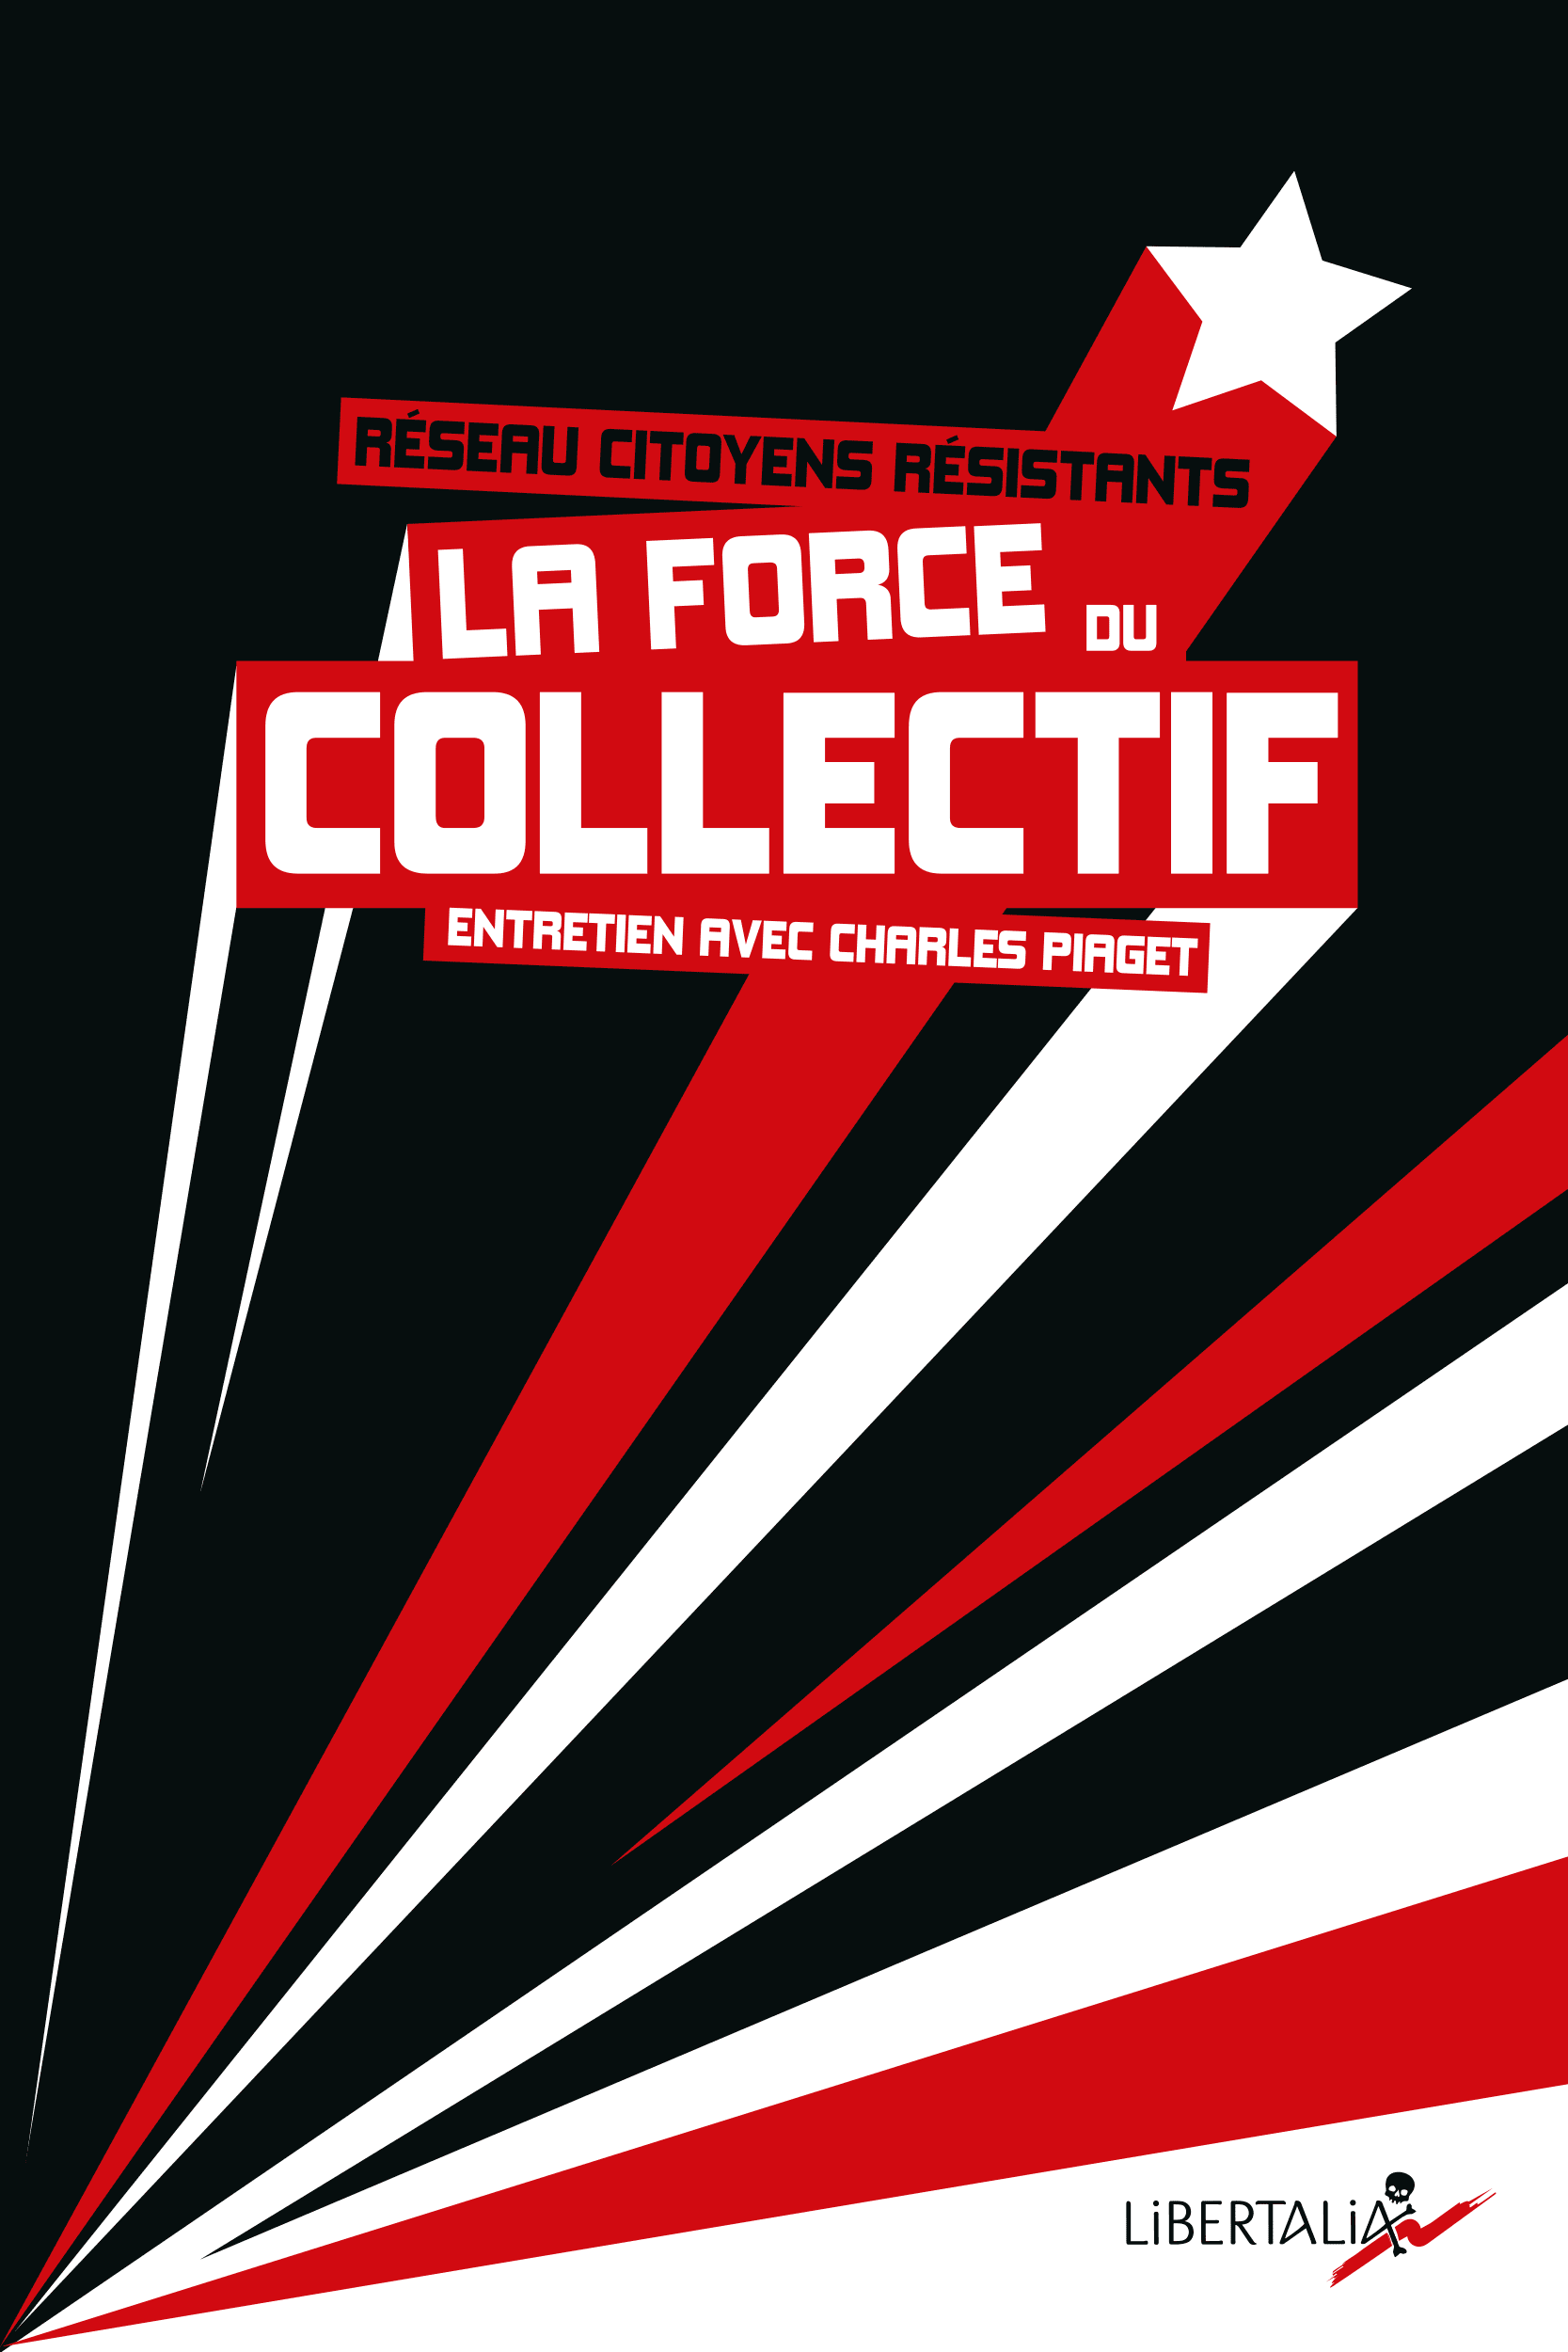 25 la-force-du-collectif-couverture-livre-bruno-bartkowiak-graphiste-illustrateur-occitanie